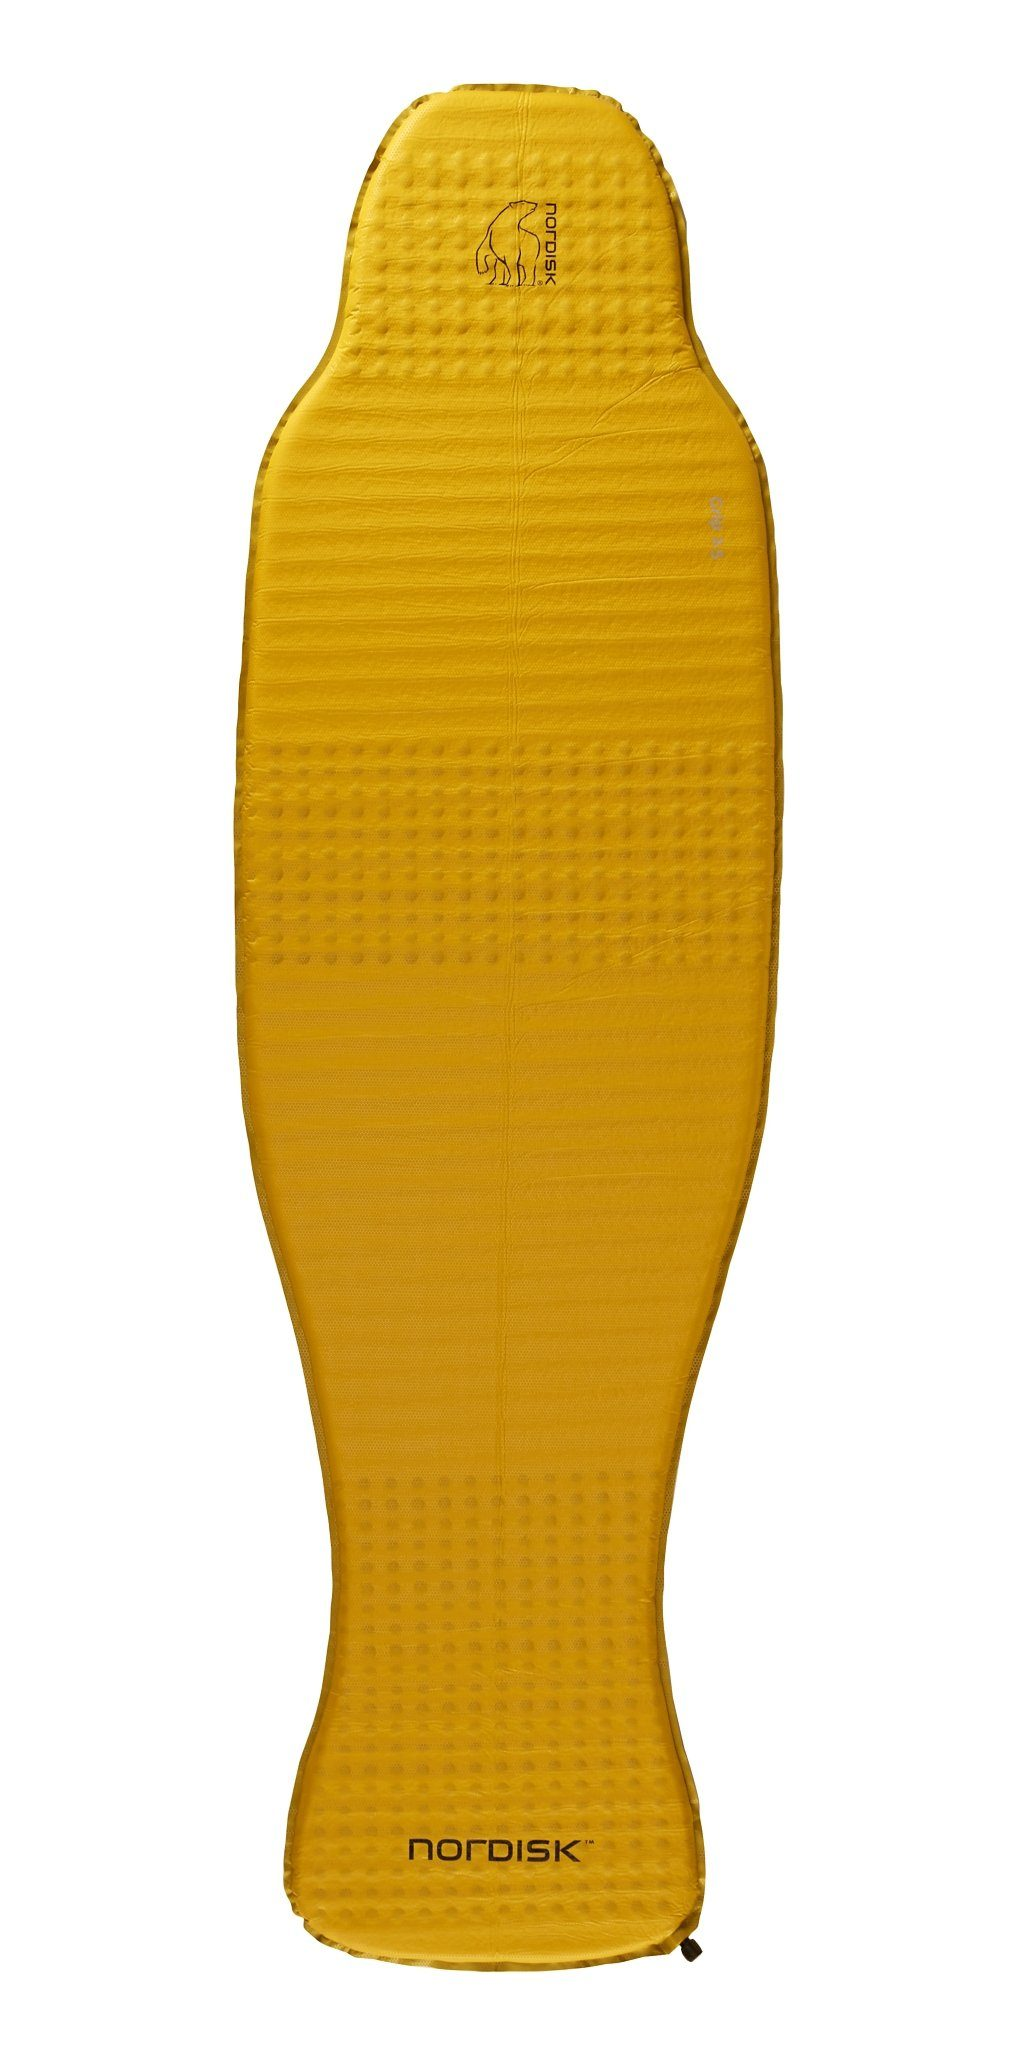 Nordisk Luftmatratze »Grip 2.5 Self-Inflatable Mat Regular«